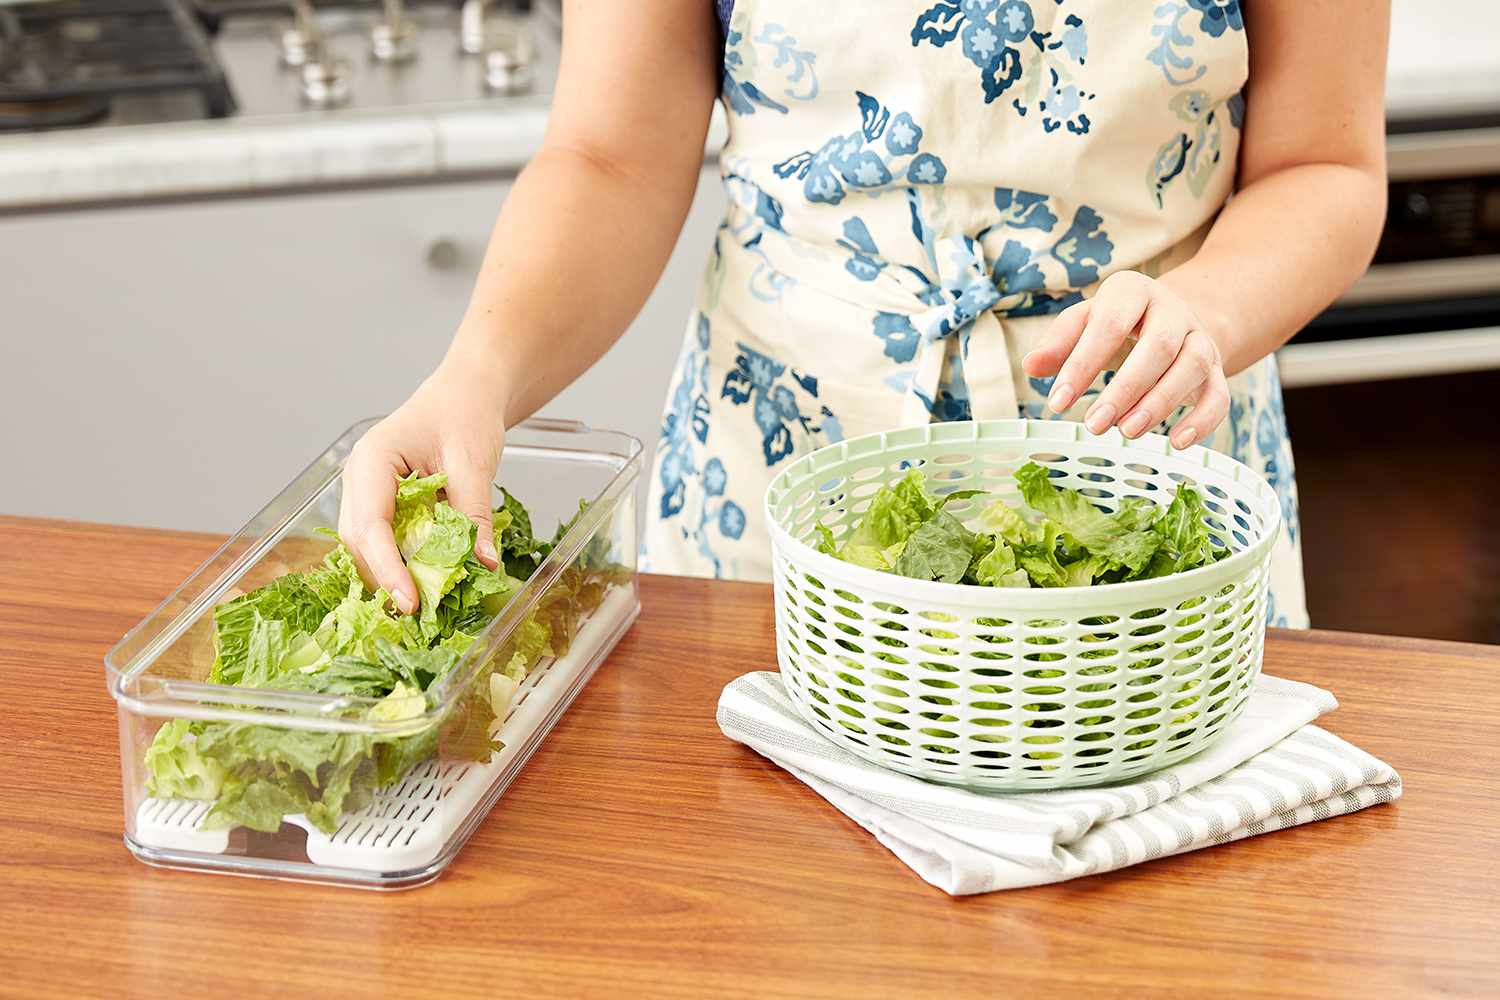 Lettuce storage Spruce Eats x Lowe's containers